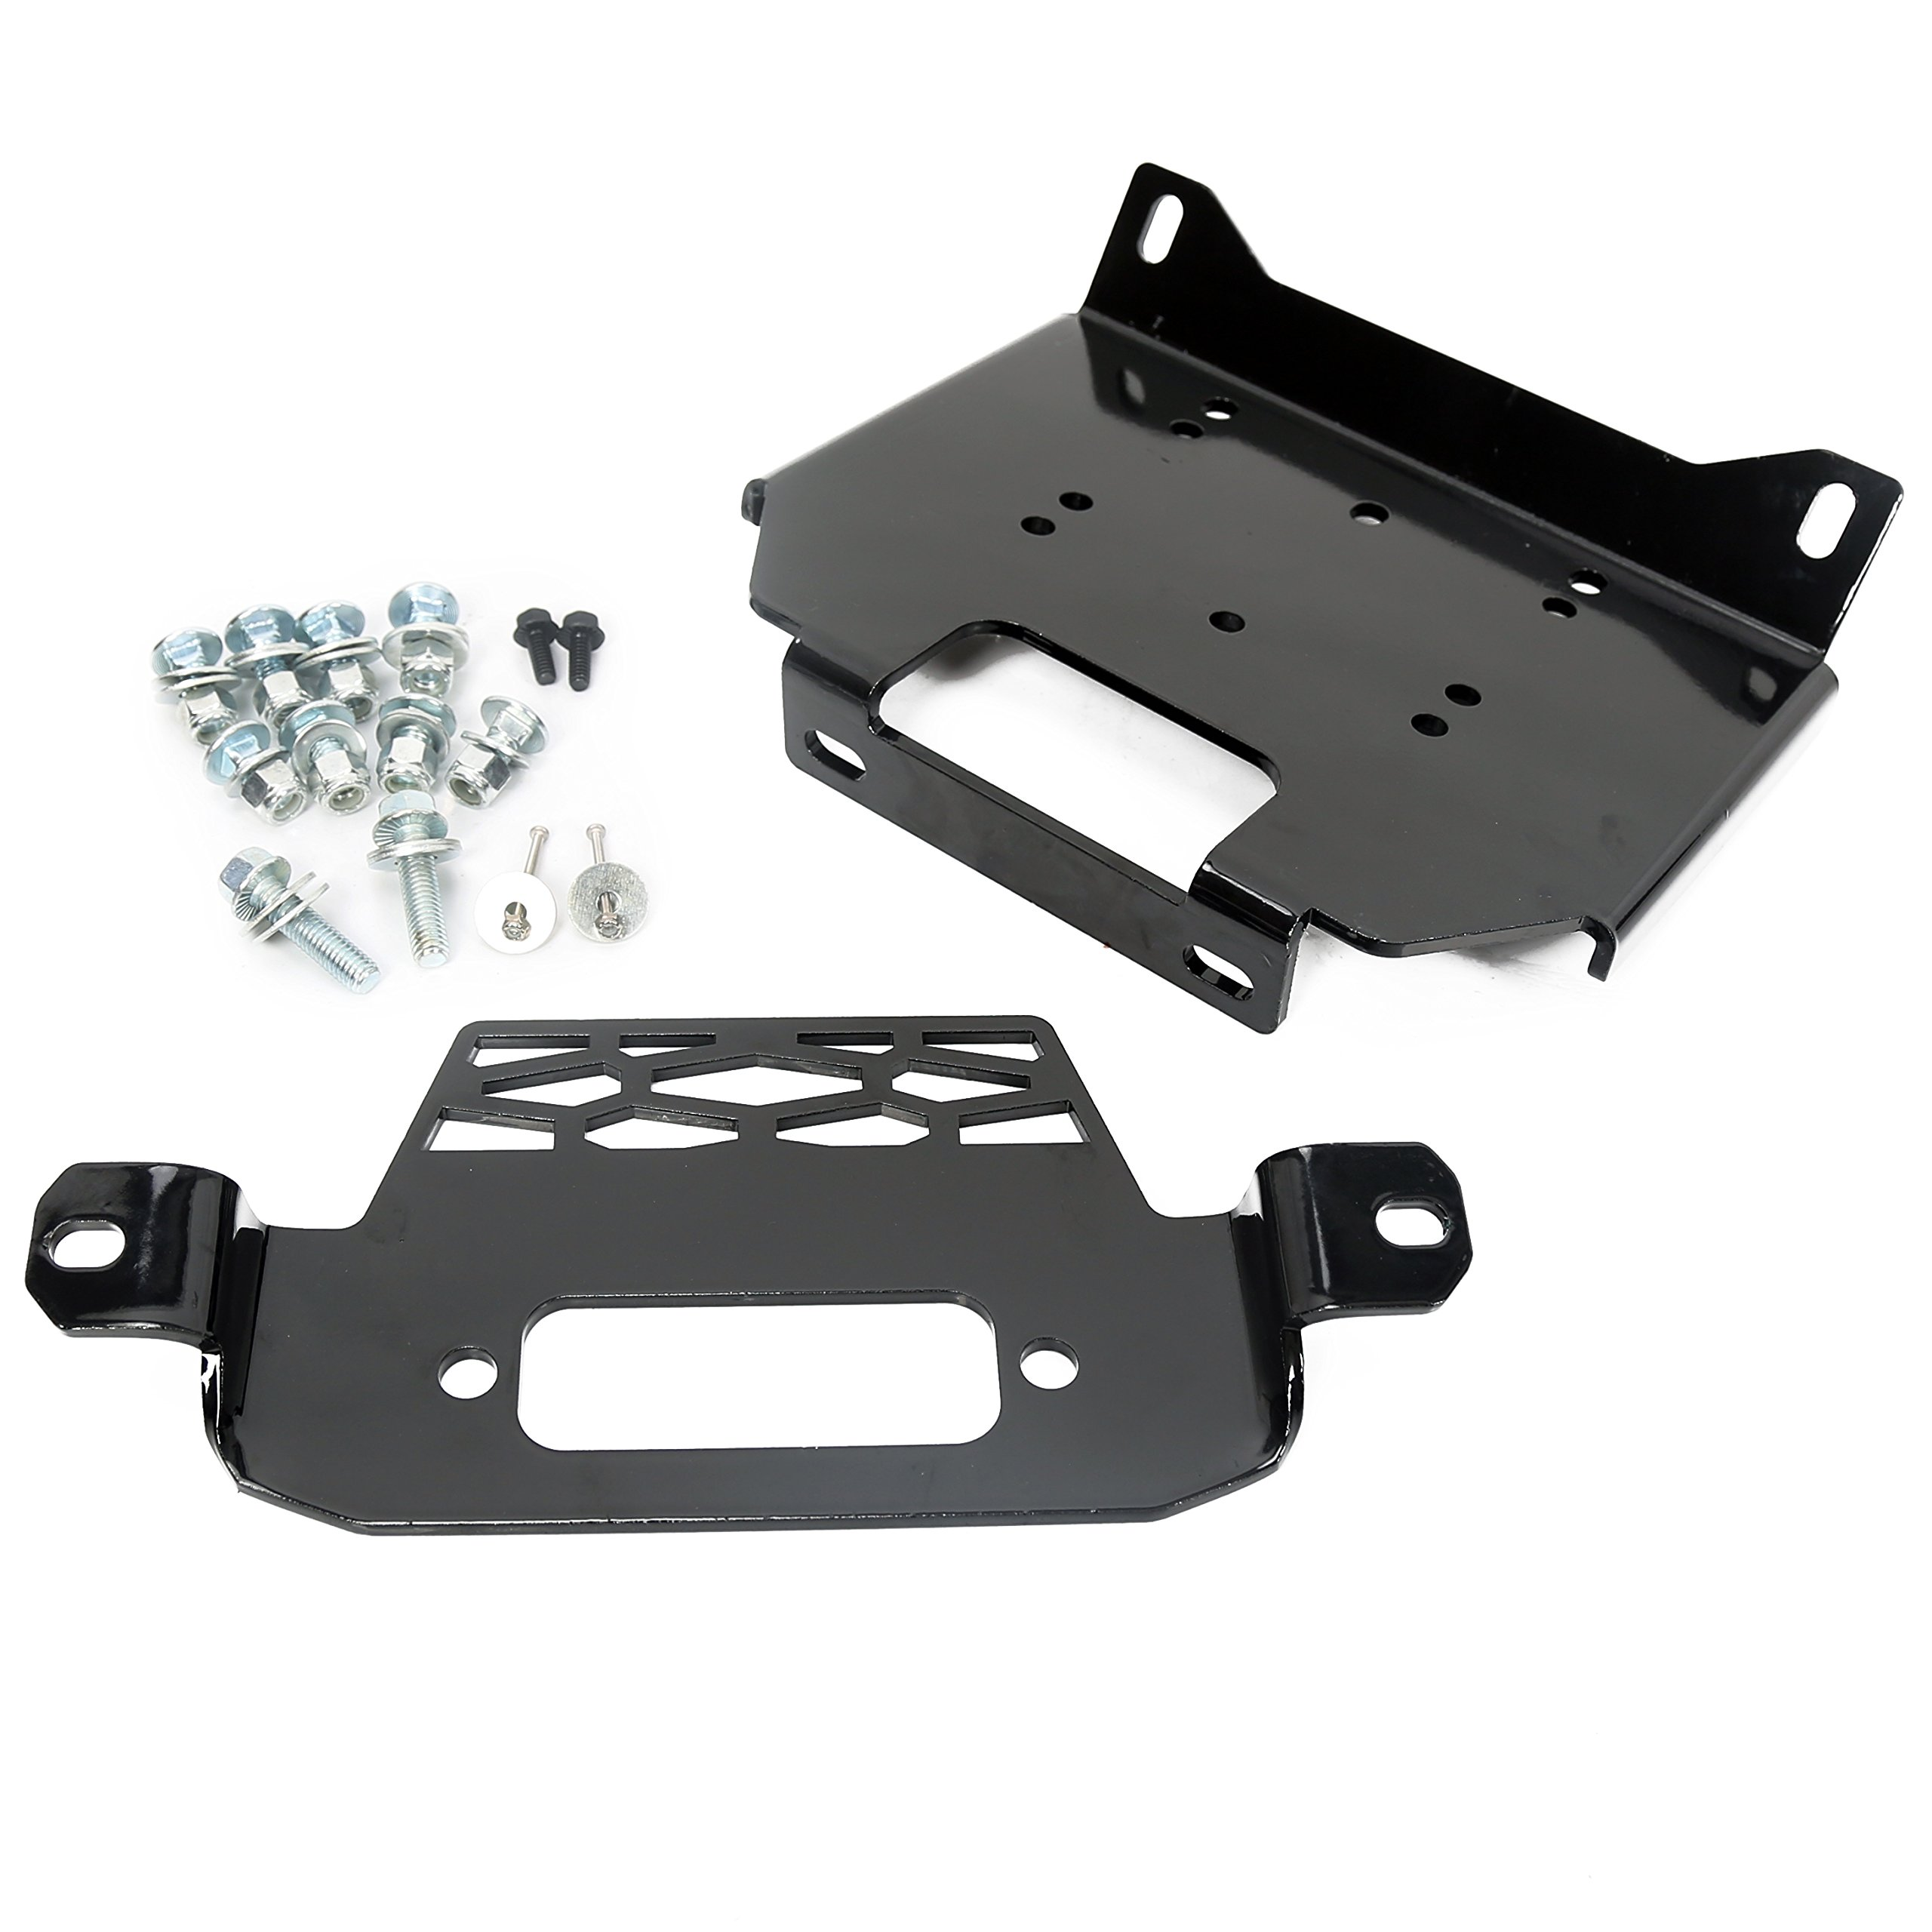 Winch Mount Plate Bracket for Polaris 15-18 RZR900&14-18 RZR 1000&General 101220 by ECOTRIC